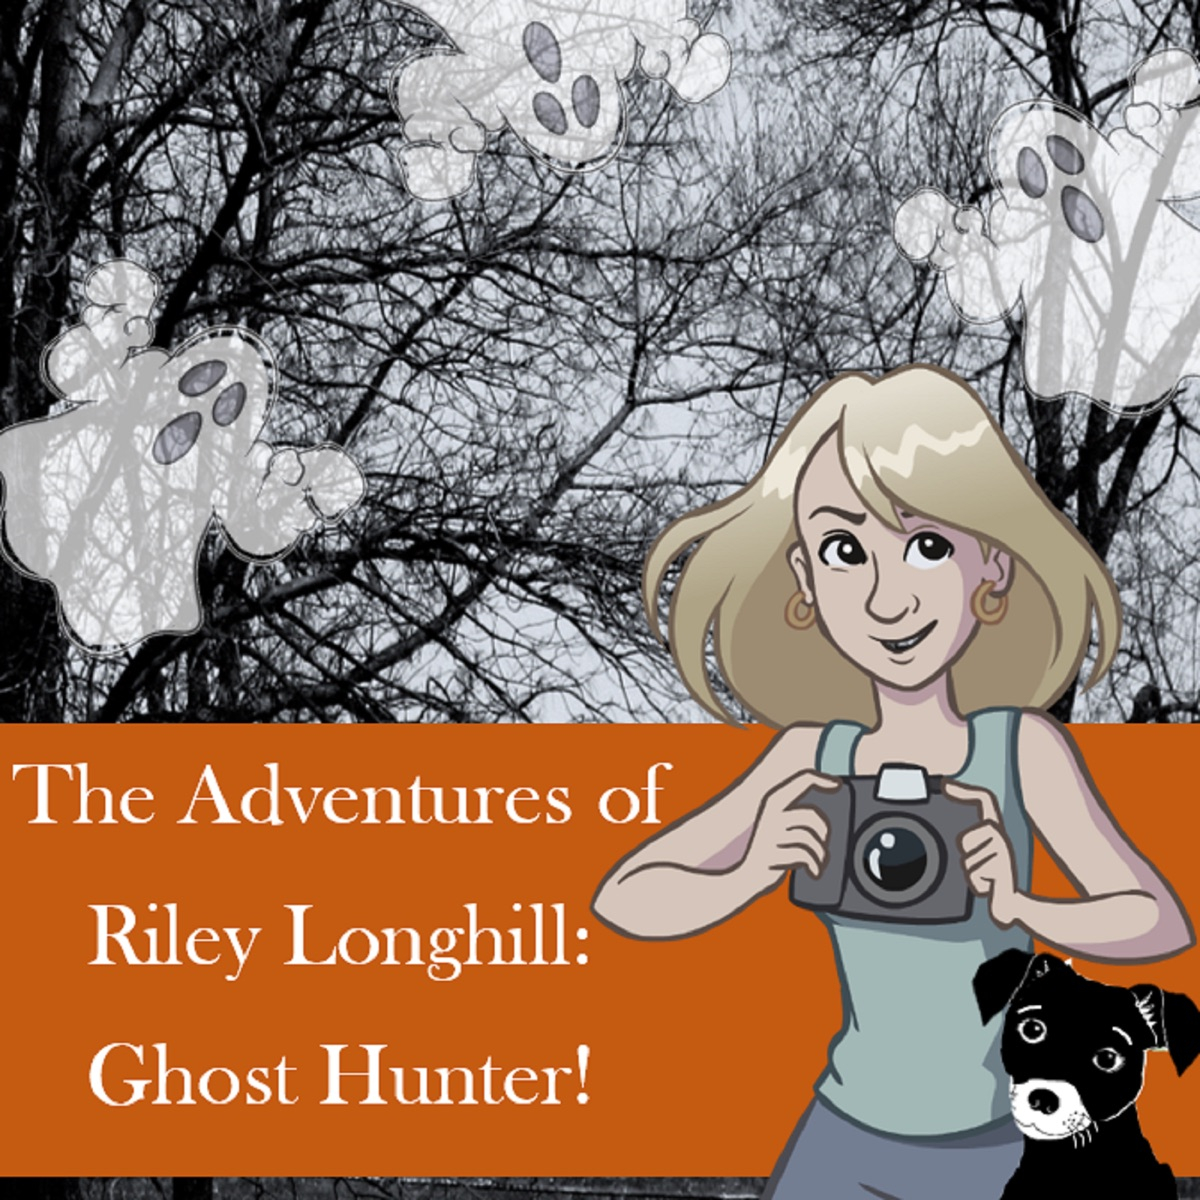 The Adventures of Riley Longhill: Ghost Hunter!